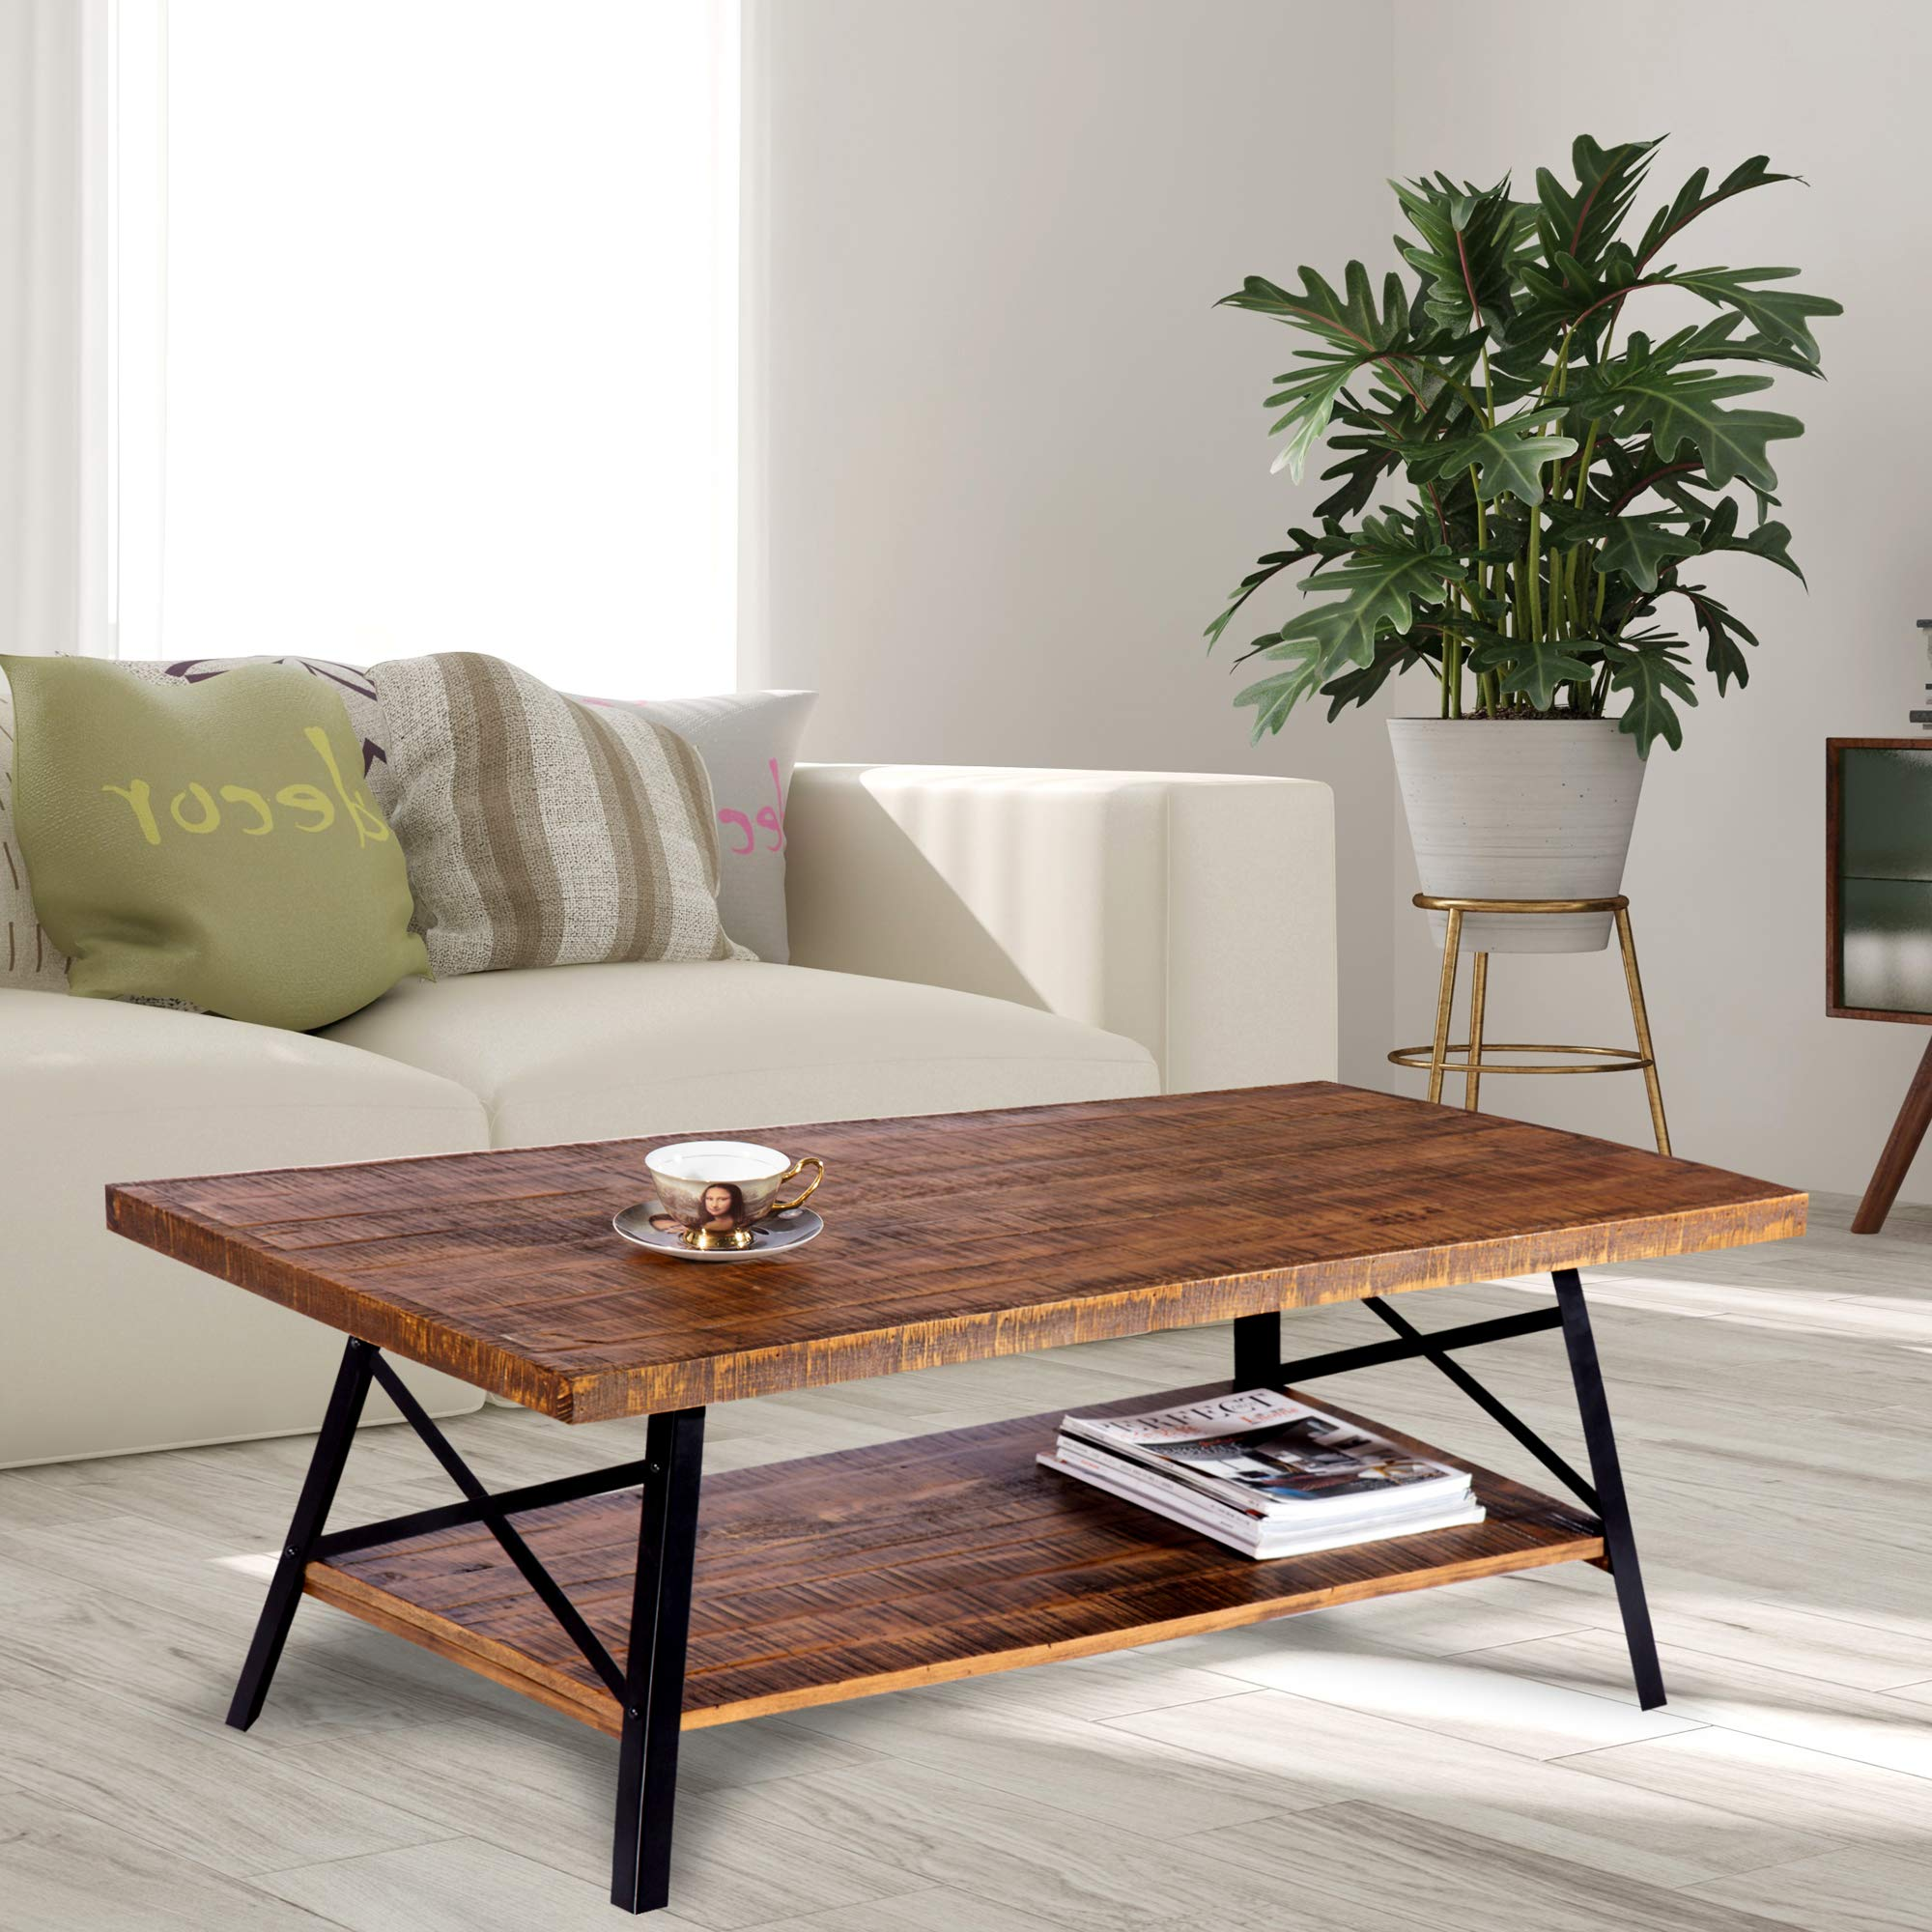 Olee Sleep 46'' Cocktail Wood & Metal Legs Coffee Table, Rustic Brown by Olee Sleep